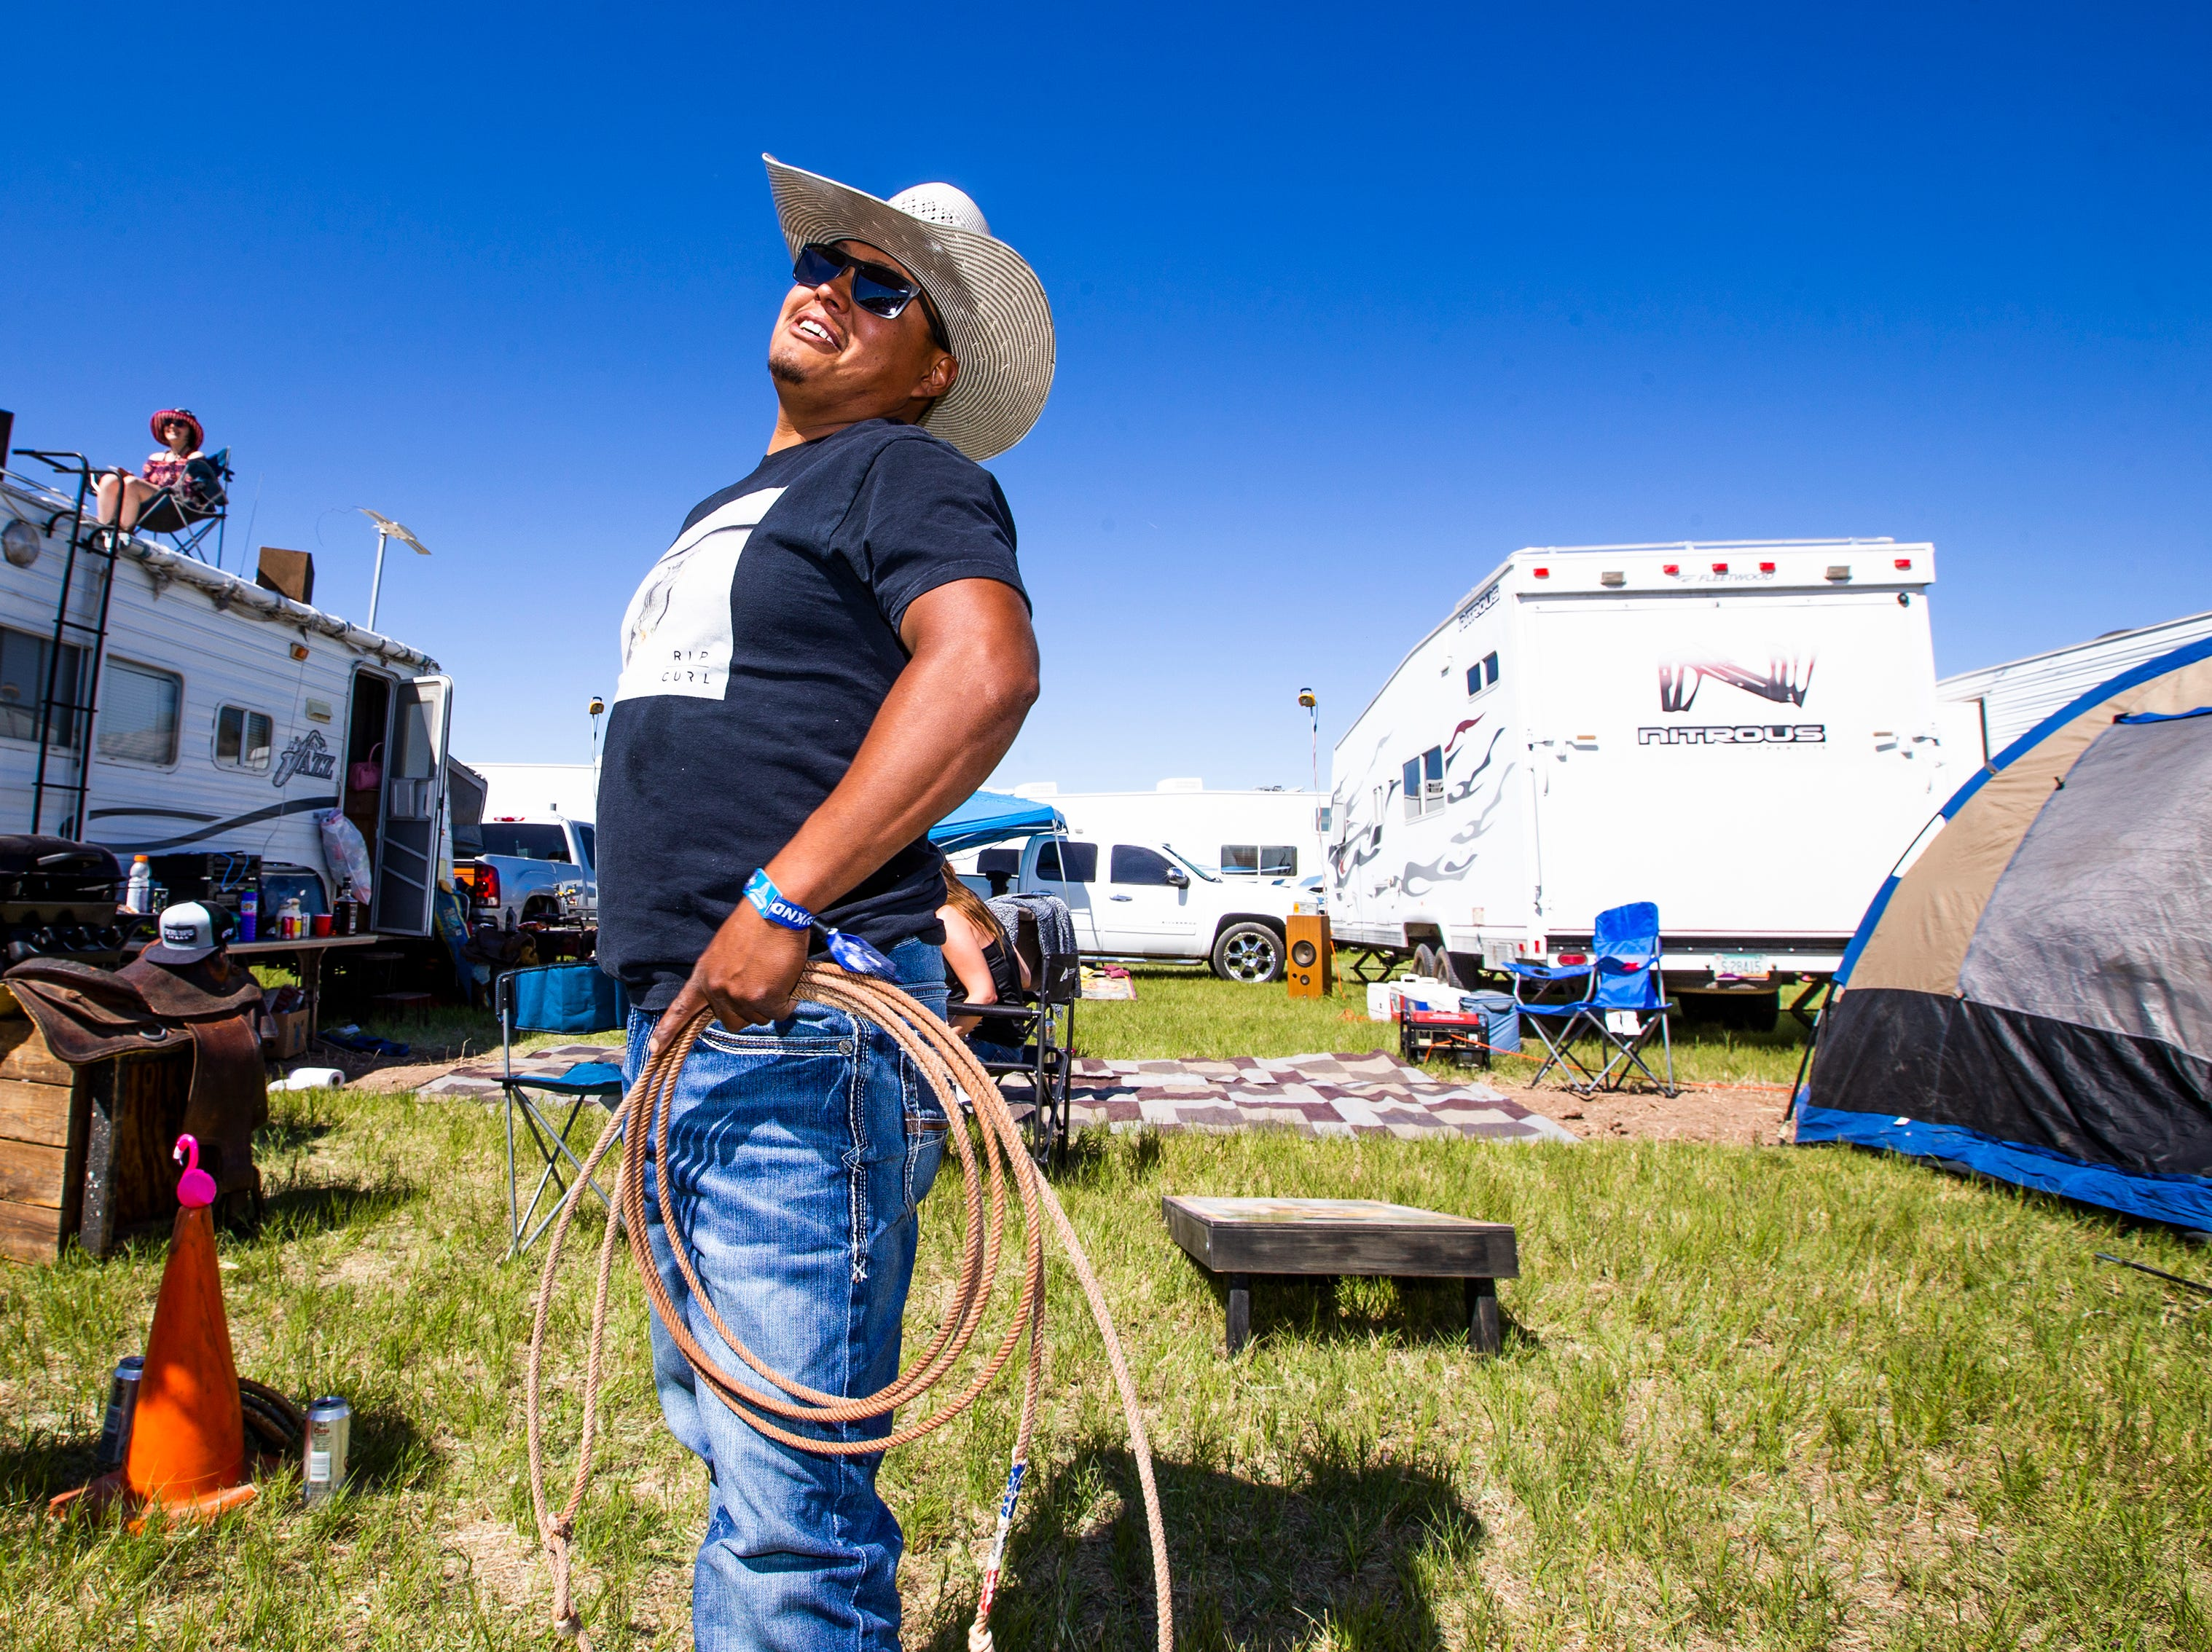 Jake Hosteen, 30, of Farmington, New Mexico, practices lassoing in his camp at the Country Thunder Arizona 2019 music festival April 11, 2019.